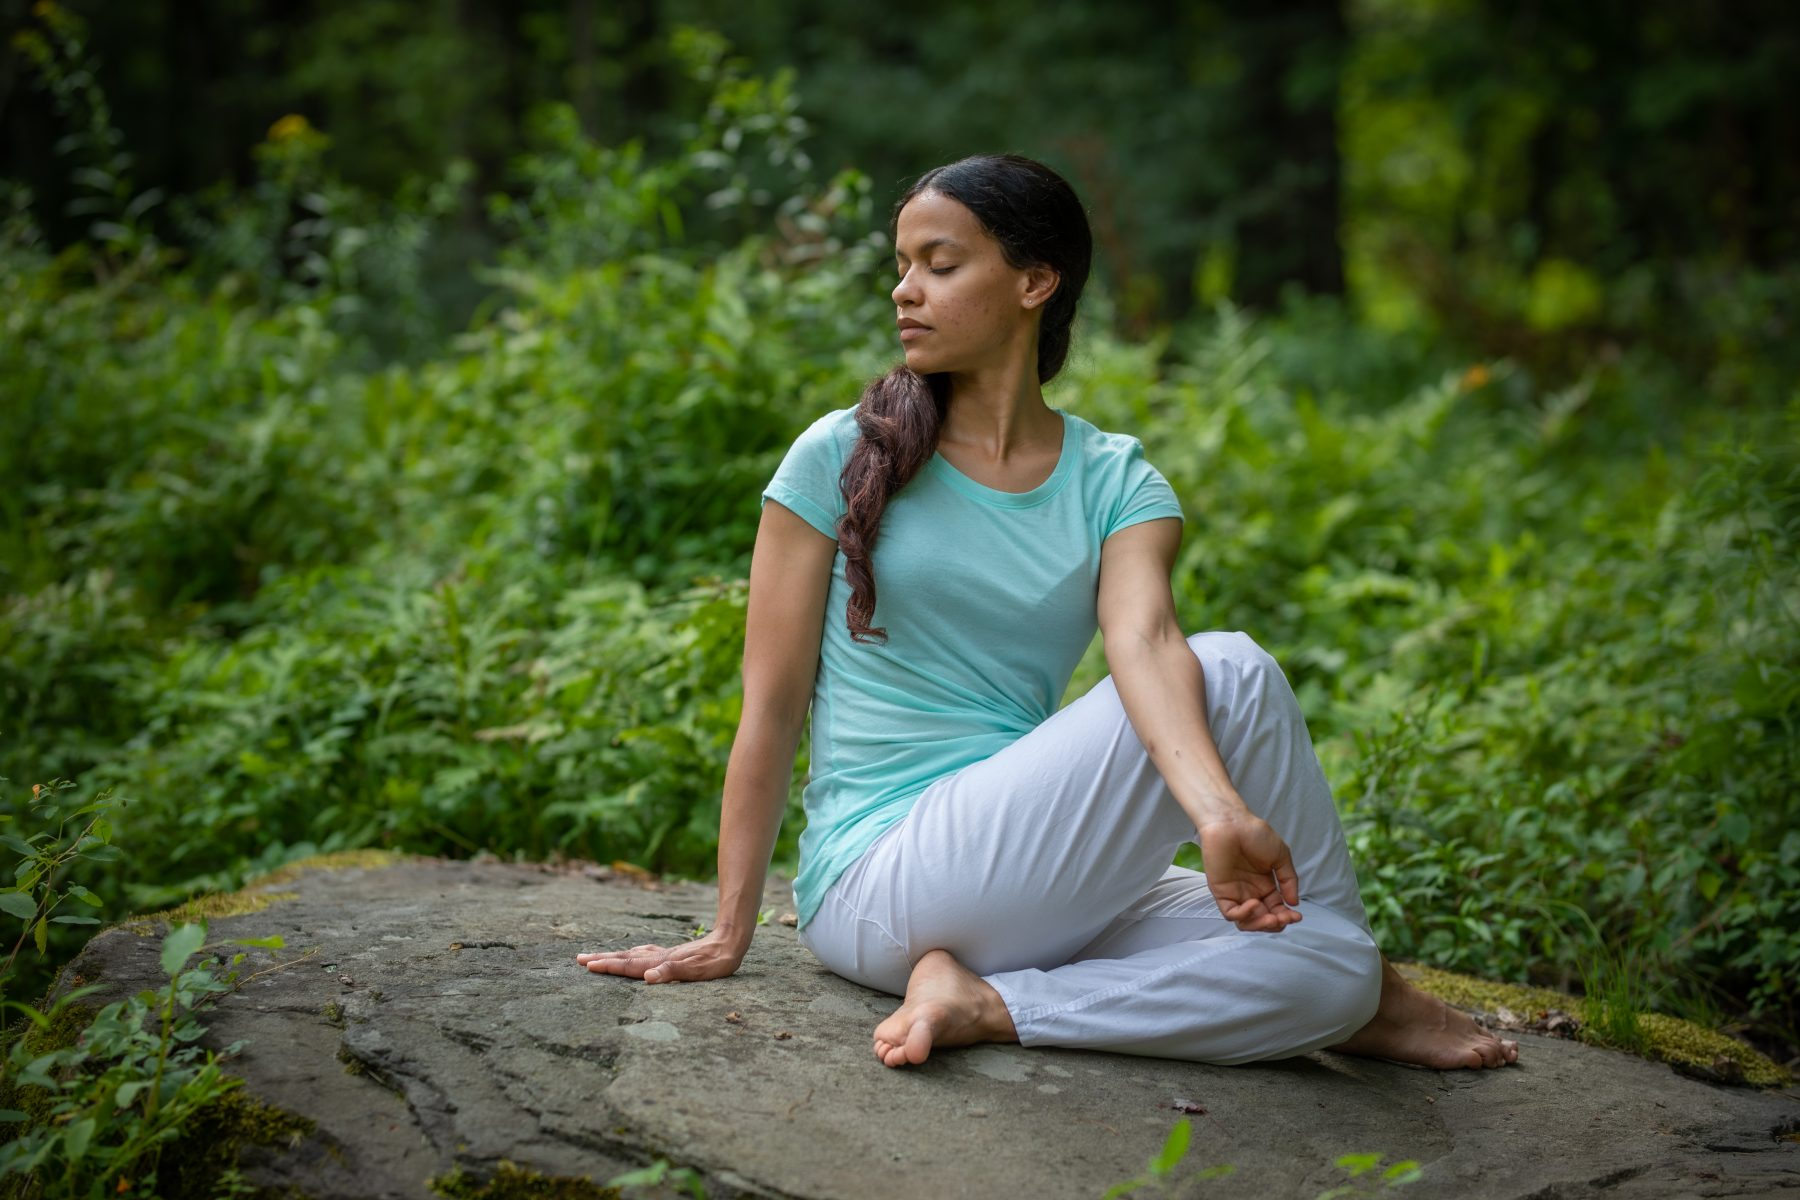 The Importance of Posture on your Physical, Mental and Emotional Health at the Sivananda Yoga Ranch